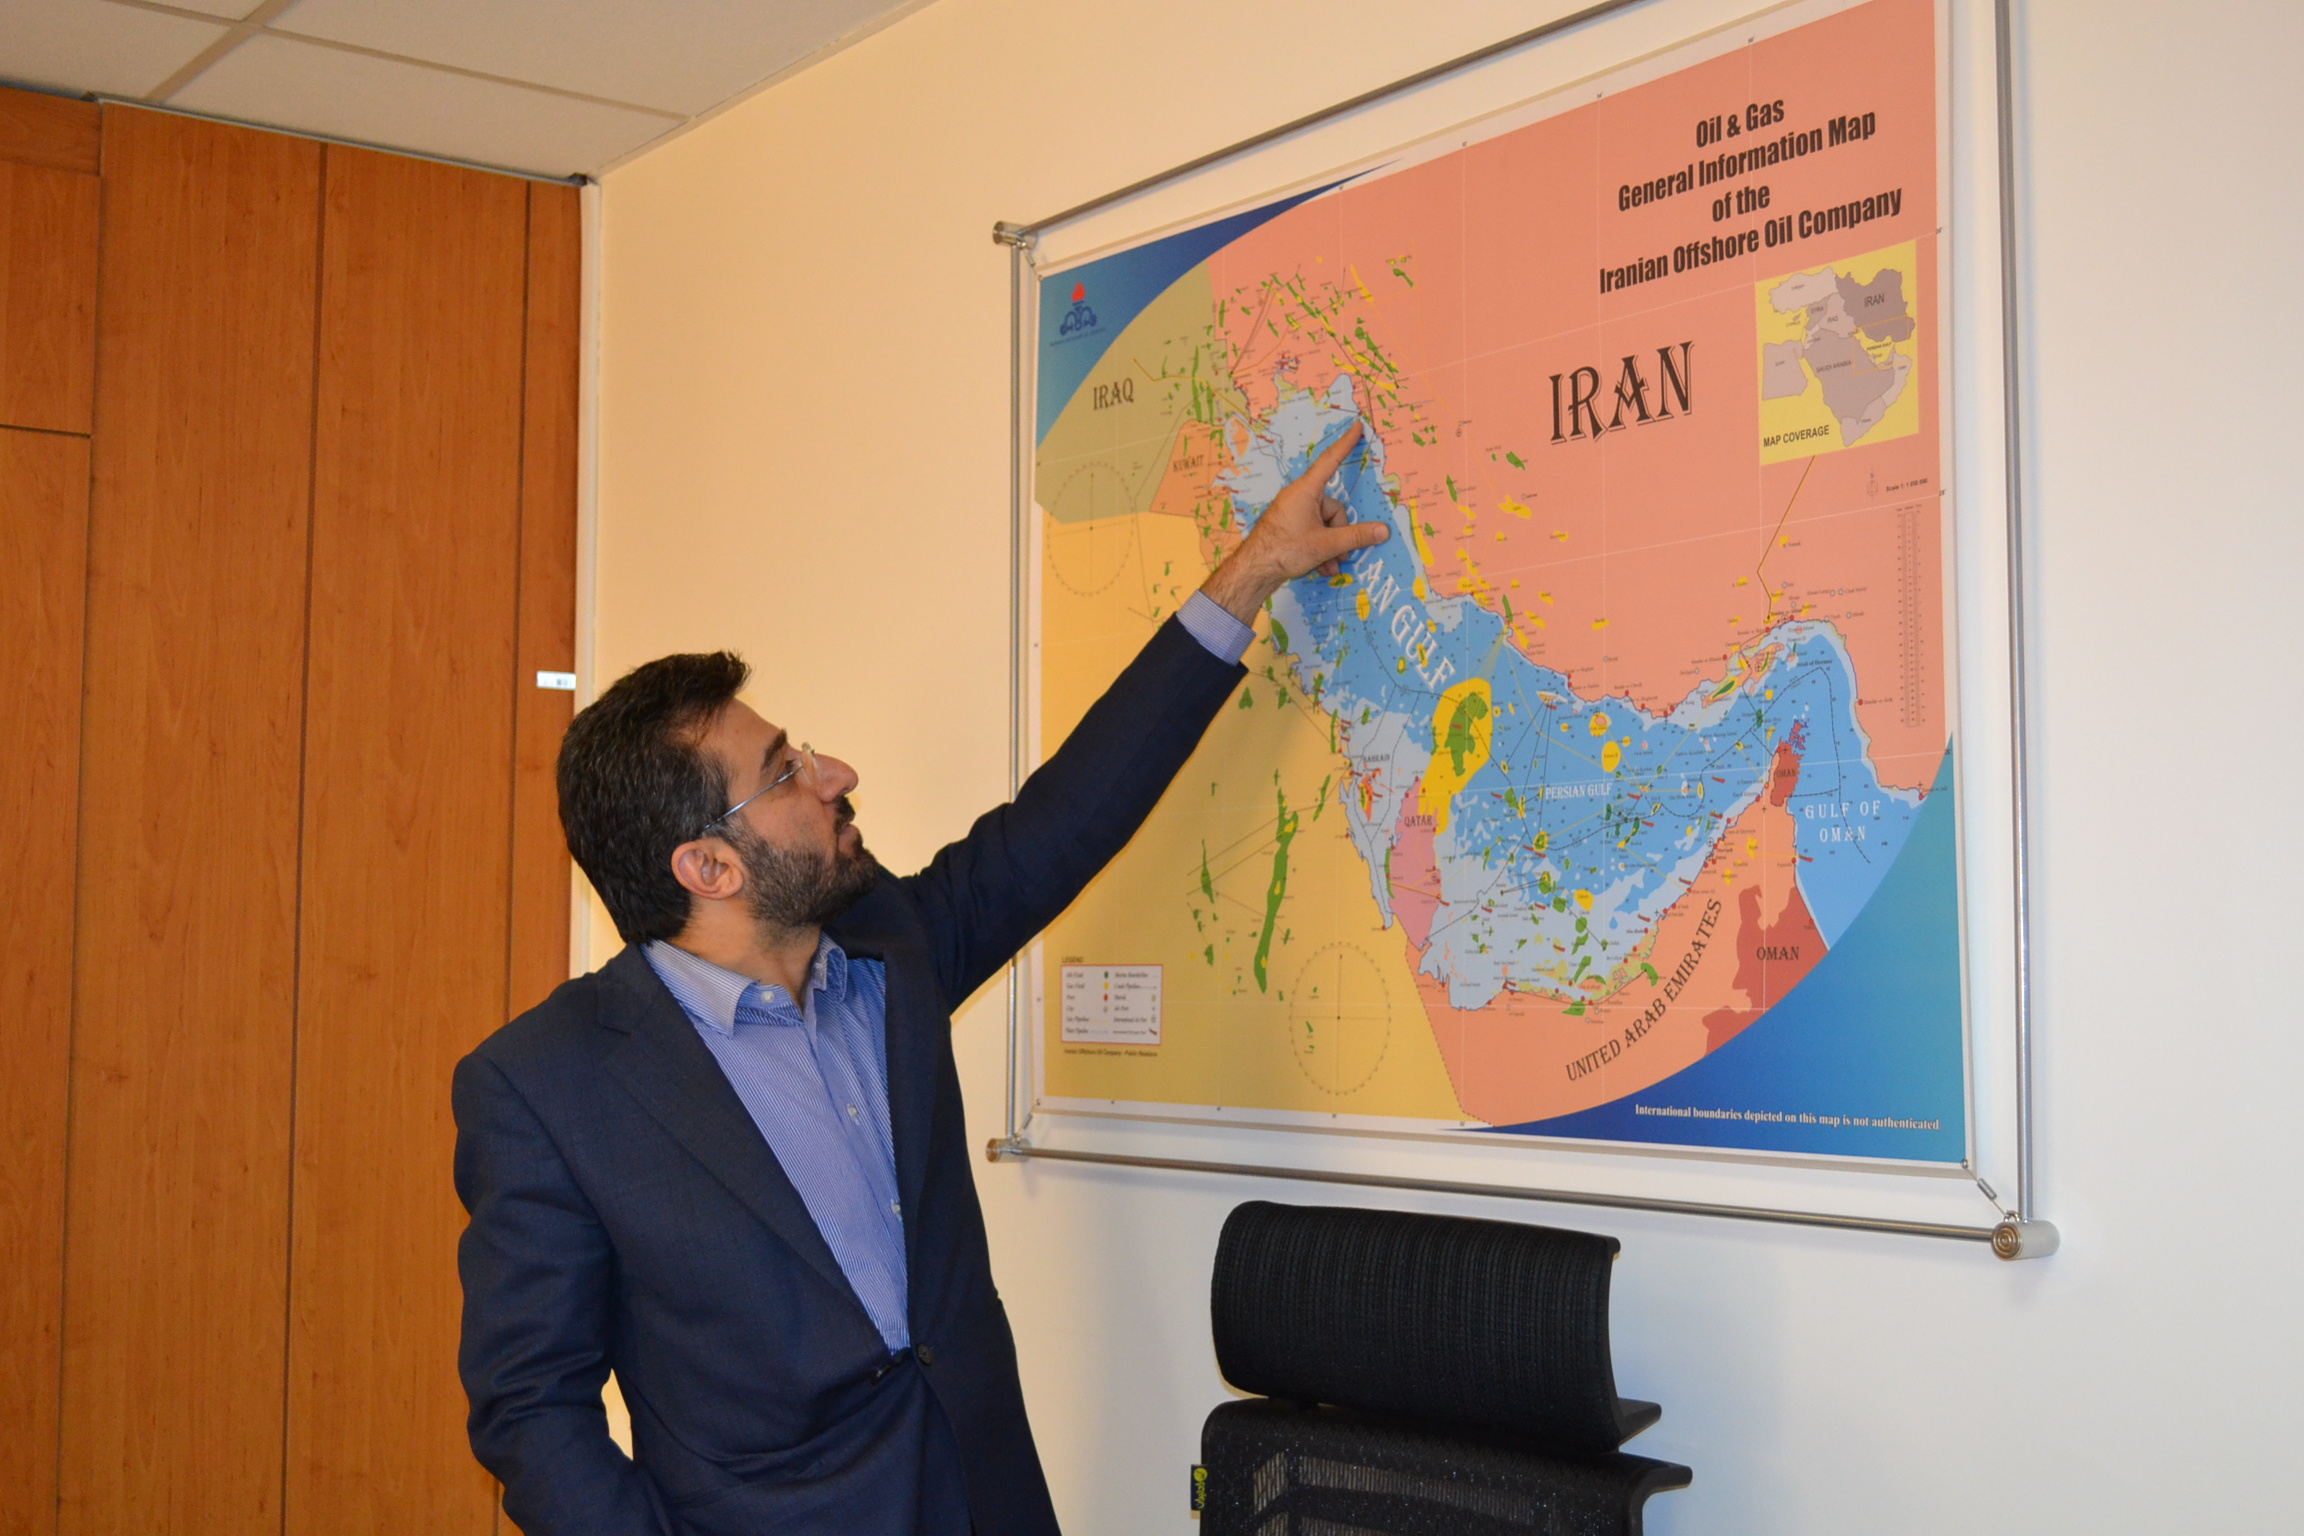 January 2017, EUmanage organised a market entry visit to Iran by request of Atlas Professionals.